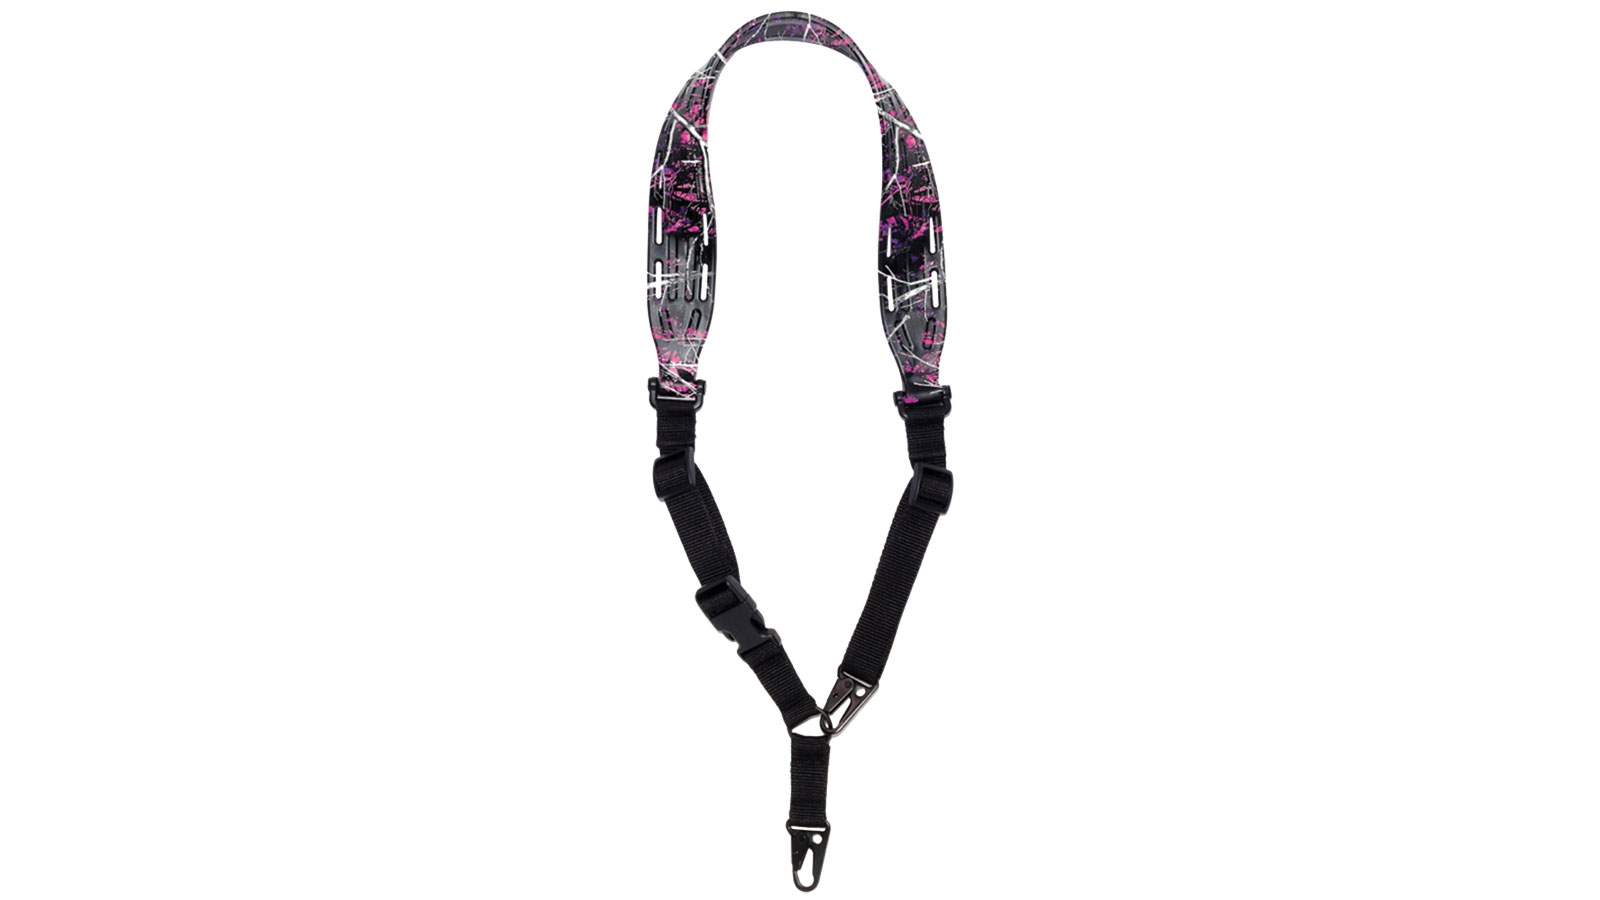 Sims Vibration SW TACTICAL SLING M|GIRL